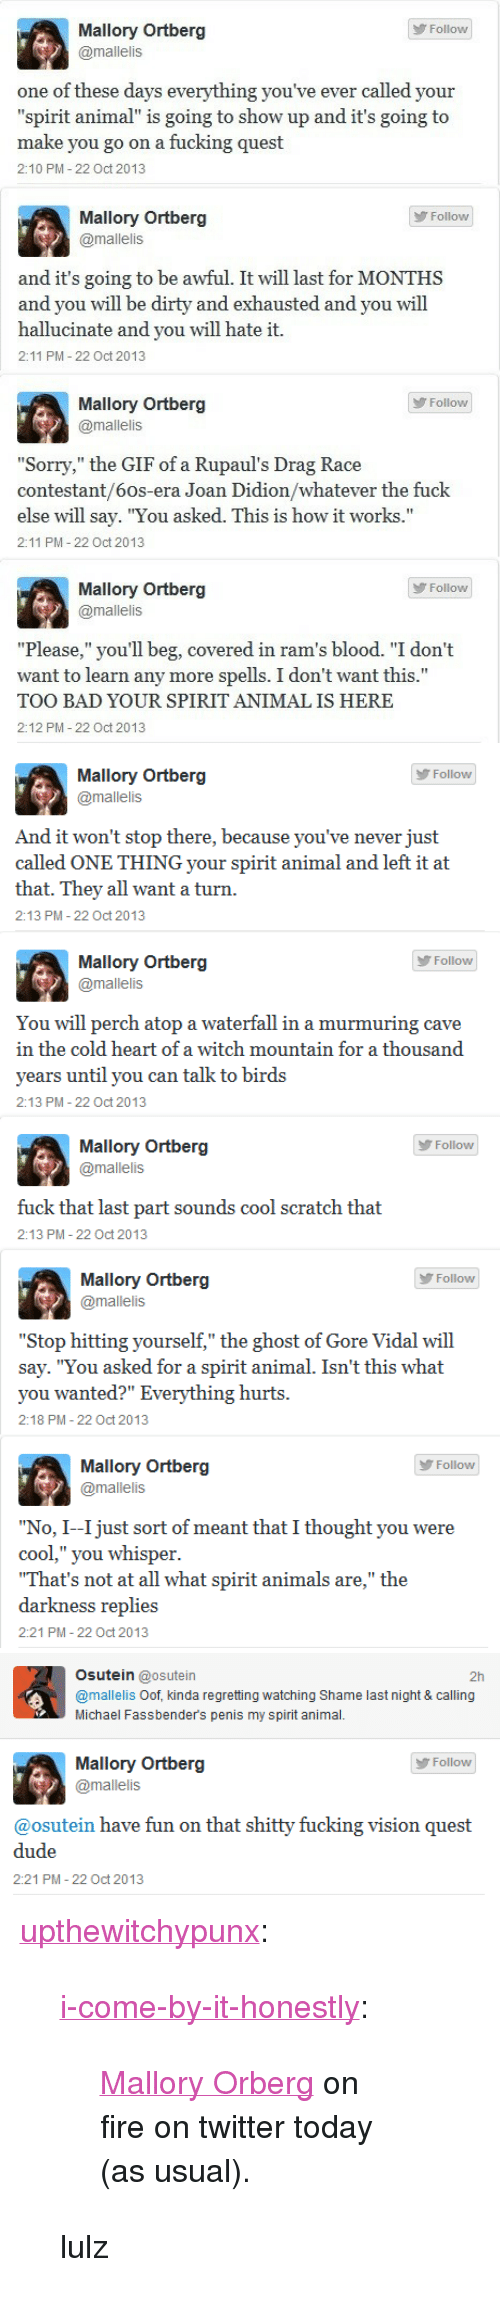 "Animals, Bad, and Dude: Mallory Ortberg  Follow  @mallelis  one of these days everything you've ever called your  ""spirit animal"" is going to show up and it's going to  make you go on a fucking quest  2:10 PM 22 Oct 2013  Mallory Ortberg  @mallelis  Follow  and it's going to be awful. It will last for MONTHS  and you will be d  hallucinate and you will hate it.  2:11 PM 22 Oct 2013  and exhausted and you will  Mallory Ortberg  @mallelis  Follow  ""Sorry,"" the GIF of a Rupaul's Drag Race  contestant/6os-era Joan Didion/whatever the fuck  else will say. ""You asked. This is how it works.""  2:11 PM 22 Oct 2013  Mallory Ortberg  Follow  @mallelis  ""Please,"" you'll beg, covered in ram's blood. ""I don't  want to learn any more spells. I don't want this.""  TOO BAD YOUR SPIRIT ANIMAL IS HERE  2:12 PM- 22 Oct 2013   Mallory Ortberg  Follow  @mallelis  And it won't stop there, because you've never just  called ONE THING your spirit animal and left it at  that.They all want a turn  2:13 PM - 22 Oct 2013  Mallory Ortberg  У Follow  @mallelis  You will perch atop a waterfall in a murmuring cave  in the cold heart of a witch mountain for a thousand  vears until you can talk to birds  2:13 PM - 22 Oct 2013  Mallory Ortberg  @mallelis  Follow  fuck that last part sounds cool scratch that  2:13 PM - 22 Oct 2013  Mallory Ortberg  @mallelis  Follow  ""Stop hitting yourself,"" the ghost of Gore Vidal will  say. ""You asked for a spirit animal. Isn't this what  you wanted?"" Everything hurts  2:18 PM - 22 Oct 2013  Mallory Ortberg  @mallelis  У Follow  ""No, I--I just sort of meant that I thought you were  cool,"" you whisper  That's not at all what spirit animals are,"" the  darkness replie  2:21 PM - 22 Oct 2013   Osutein @osutein  @mallelis Oof, kinda regretting watching Shame last night & calling  Michael Fassbender's penis my spirit animal.  2h  Follow  @mallelis  ibait躙bUU y fue: kj tng g沁萄1(劜(guesi  @osutein h a wes fum gn  dude  2:21 PM -22 Oct 2013 <p><a href=""http://upthewitchypunx.tumblr.com/post/64877500126/i-come-by-it-honestly-mallory-orberg-on-fire-on"" class=""tumblr_blog"">upthewitchypunx</a>:</p> <blockquote> <p><a class=""tumblr_blog"" href=""http://i-come-by-it-honestly.tumblr.com/post/64754525123/mallory-orberg-on-fire-on-twitter-today-as"">i-come-by-it-honestly</a>:</p> <blockquote> <p><a href=""https://twitter.com/mallelis"">Mallory Orberg</a> on fire on twitter today (as usual).</p> </blockquote> <p>lulz</p> </blockquote>"